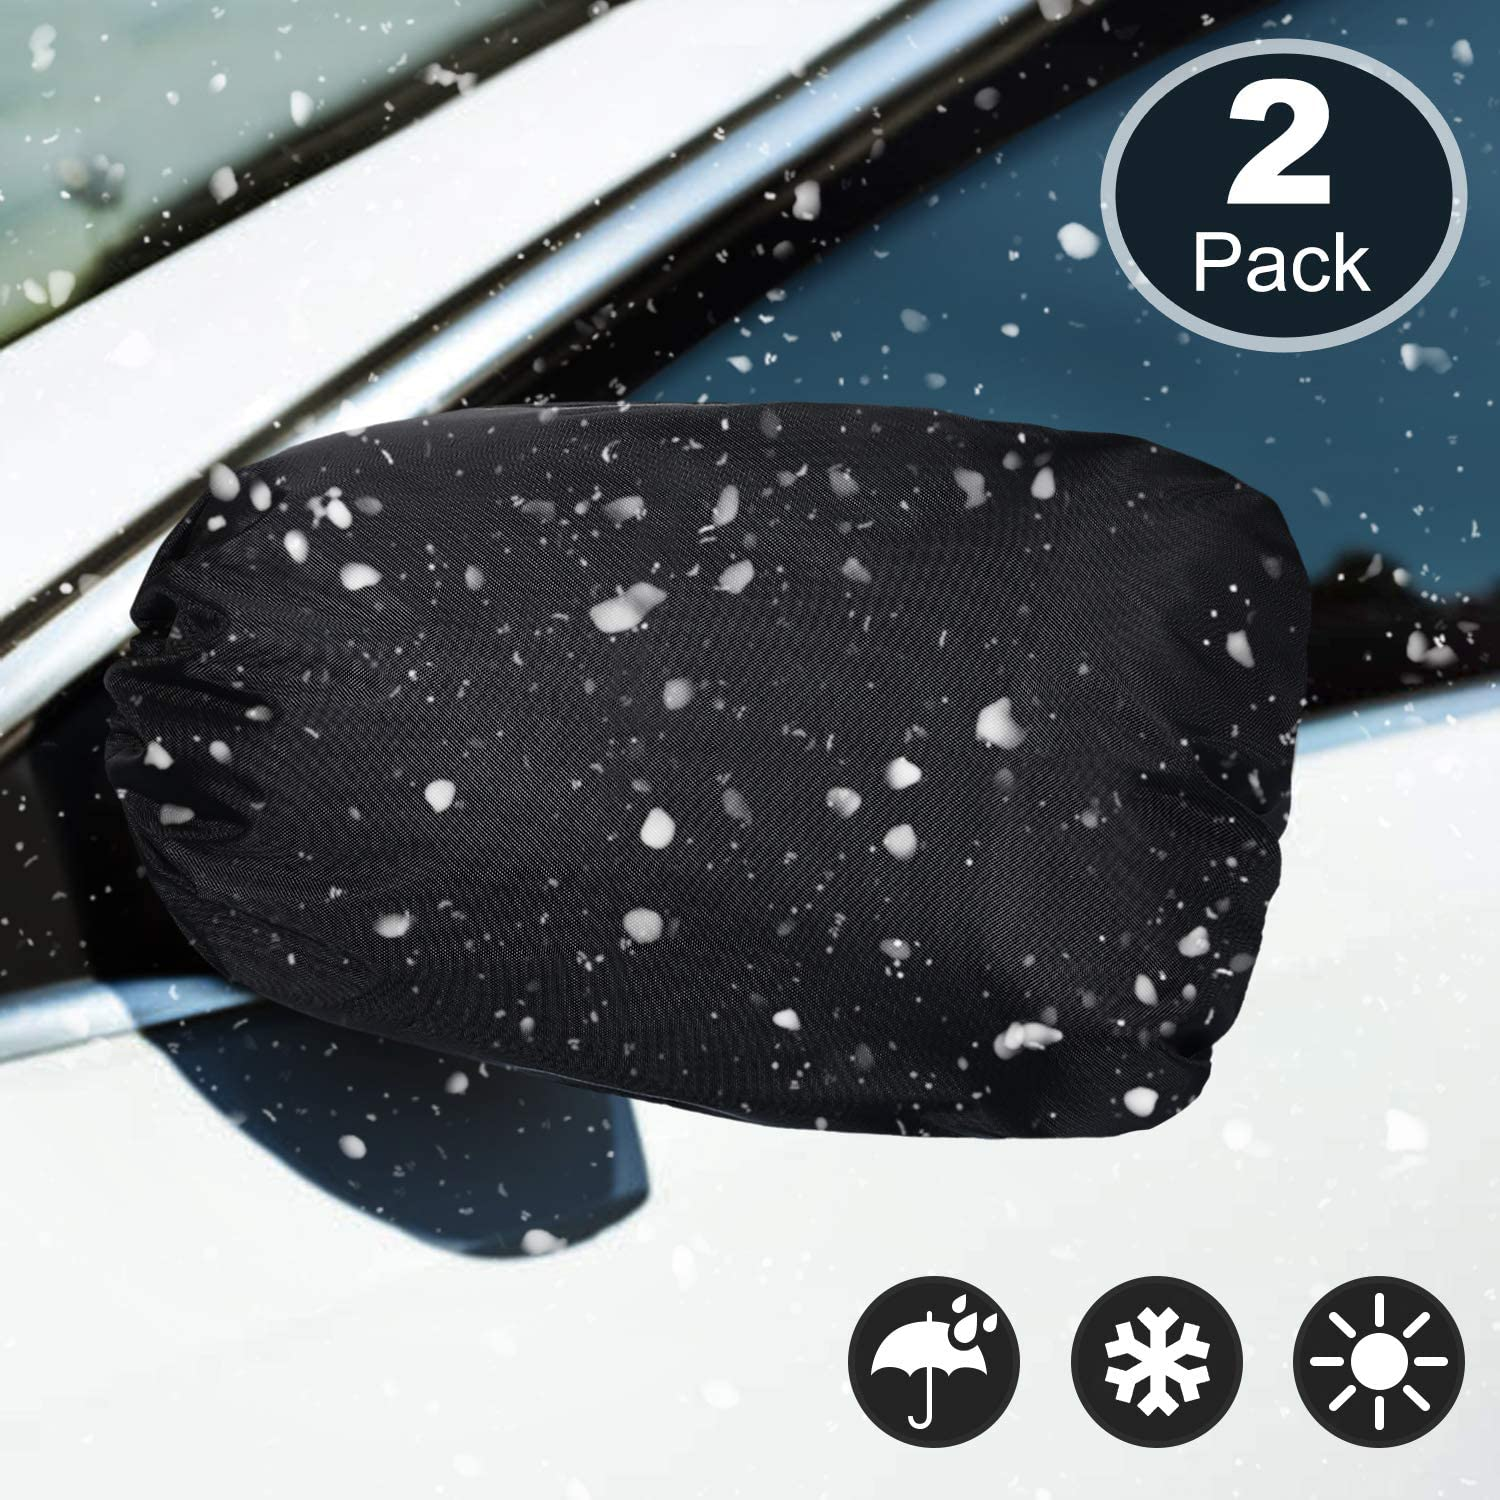 2 Pieces Side View Mirror Cover Frost Guard Mirror Cover Auto Rearview Protection Cover Snow Ice Mirror Covers Exterior Rear View Accessories Universal Size for Cars Black